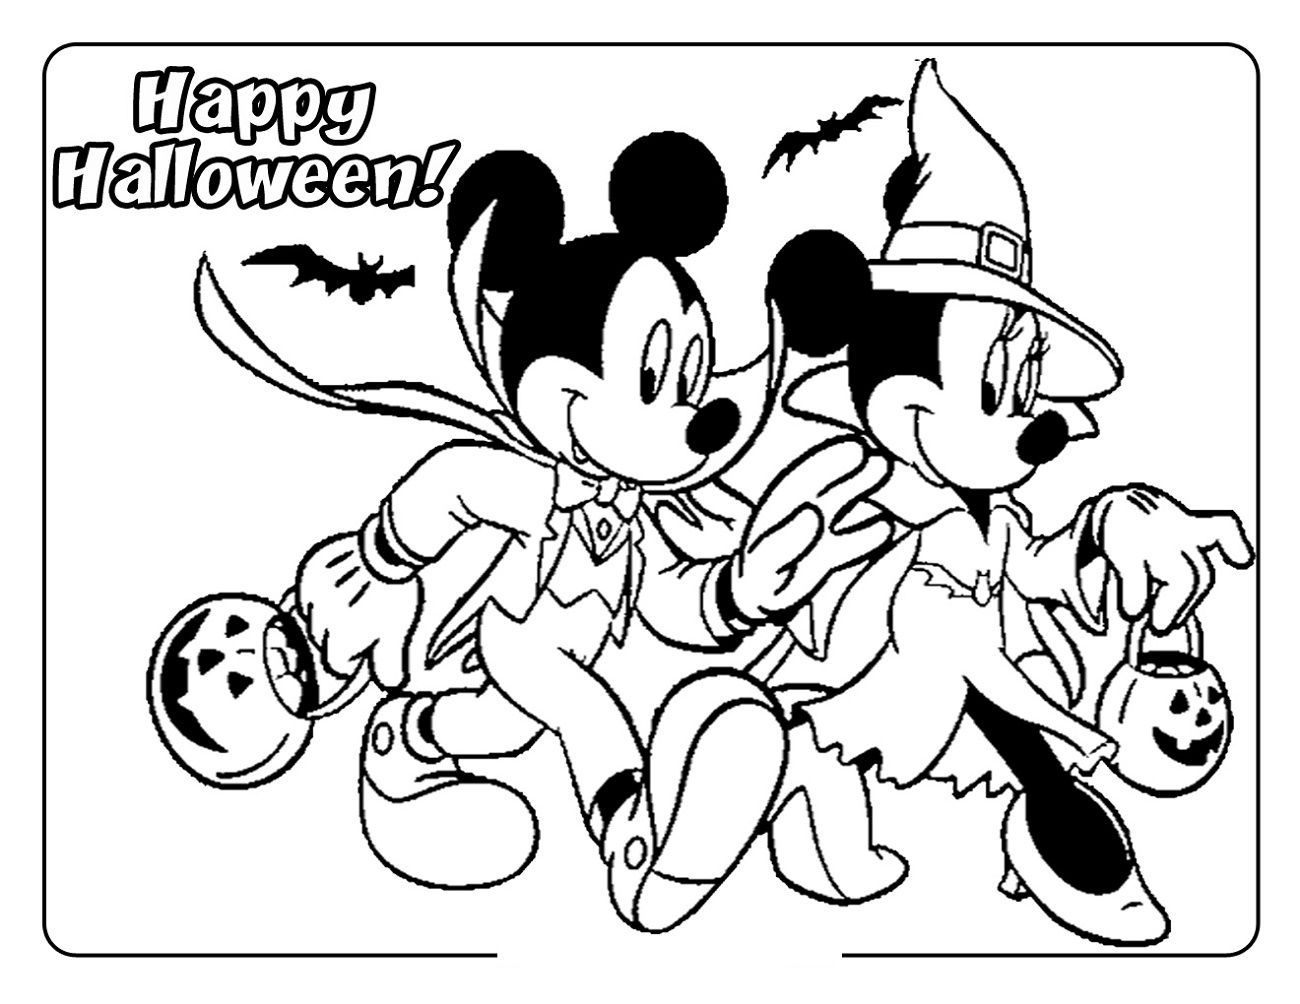 Happy Halloween Disney Coloring Page For Kids Pluto Is Afraid Of The Bats Maybe I Tinkerbell Coloring Pages Disney Coloring Pages Mickey Mouse Coloring Pages